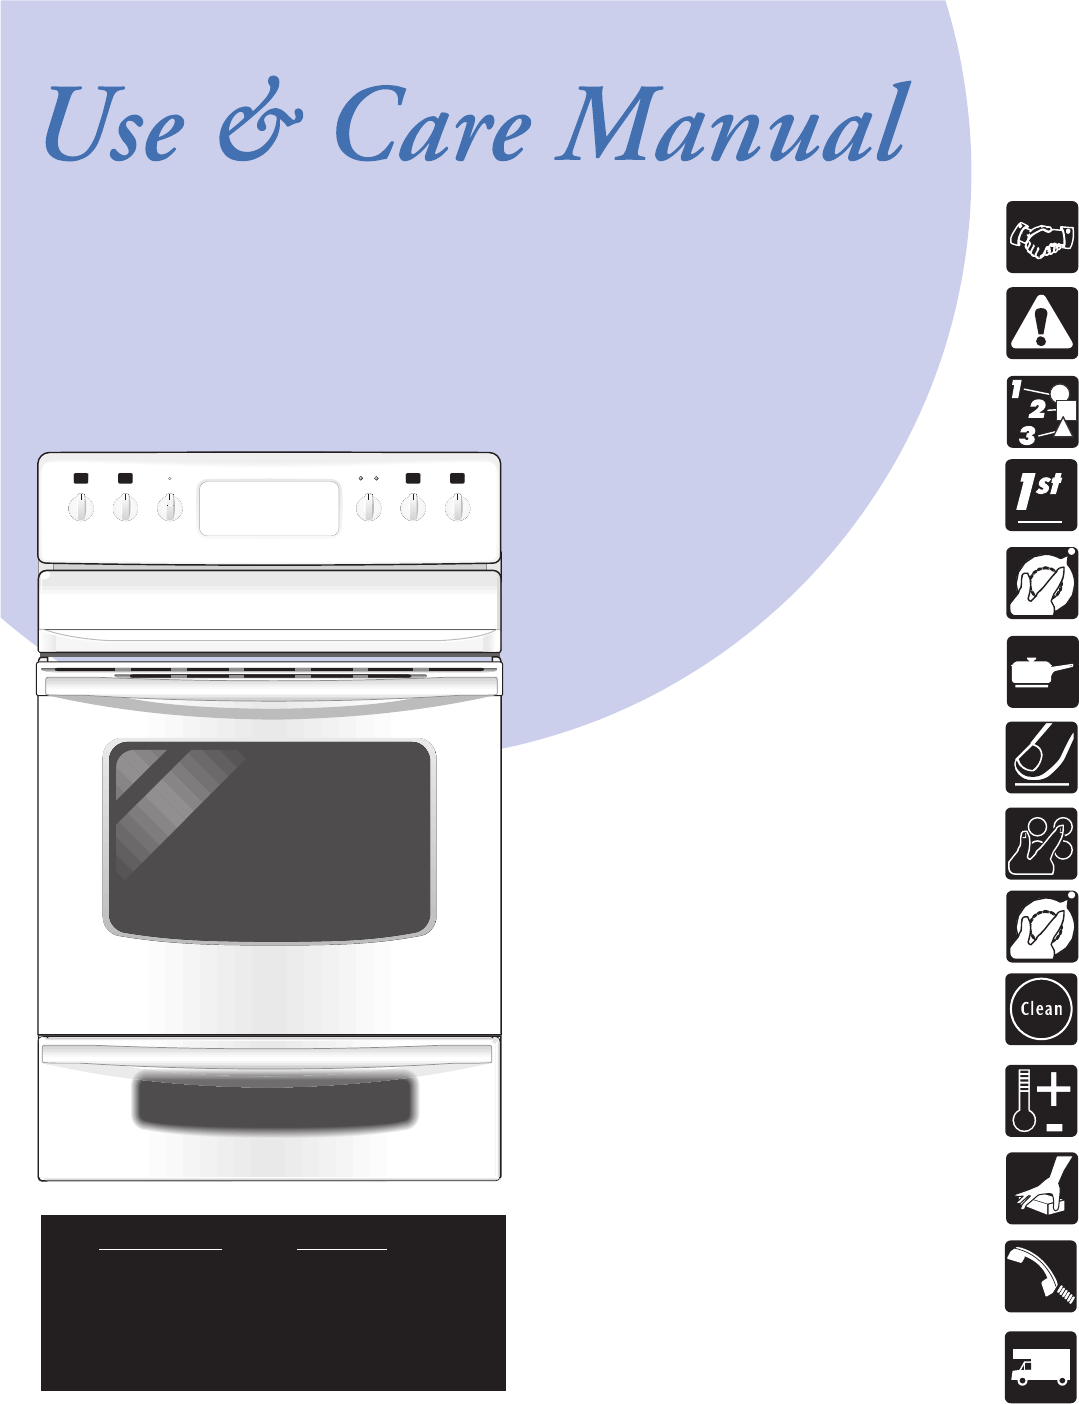 frigidaire self cleaning oven manual pdf gnewsinfo com Frigidaire Professional Oven Manual frigidaire gallery self cleaning convection oven instruction manual